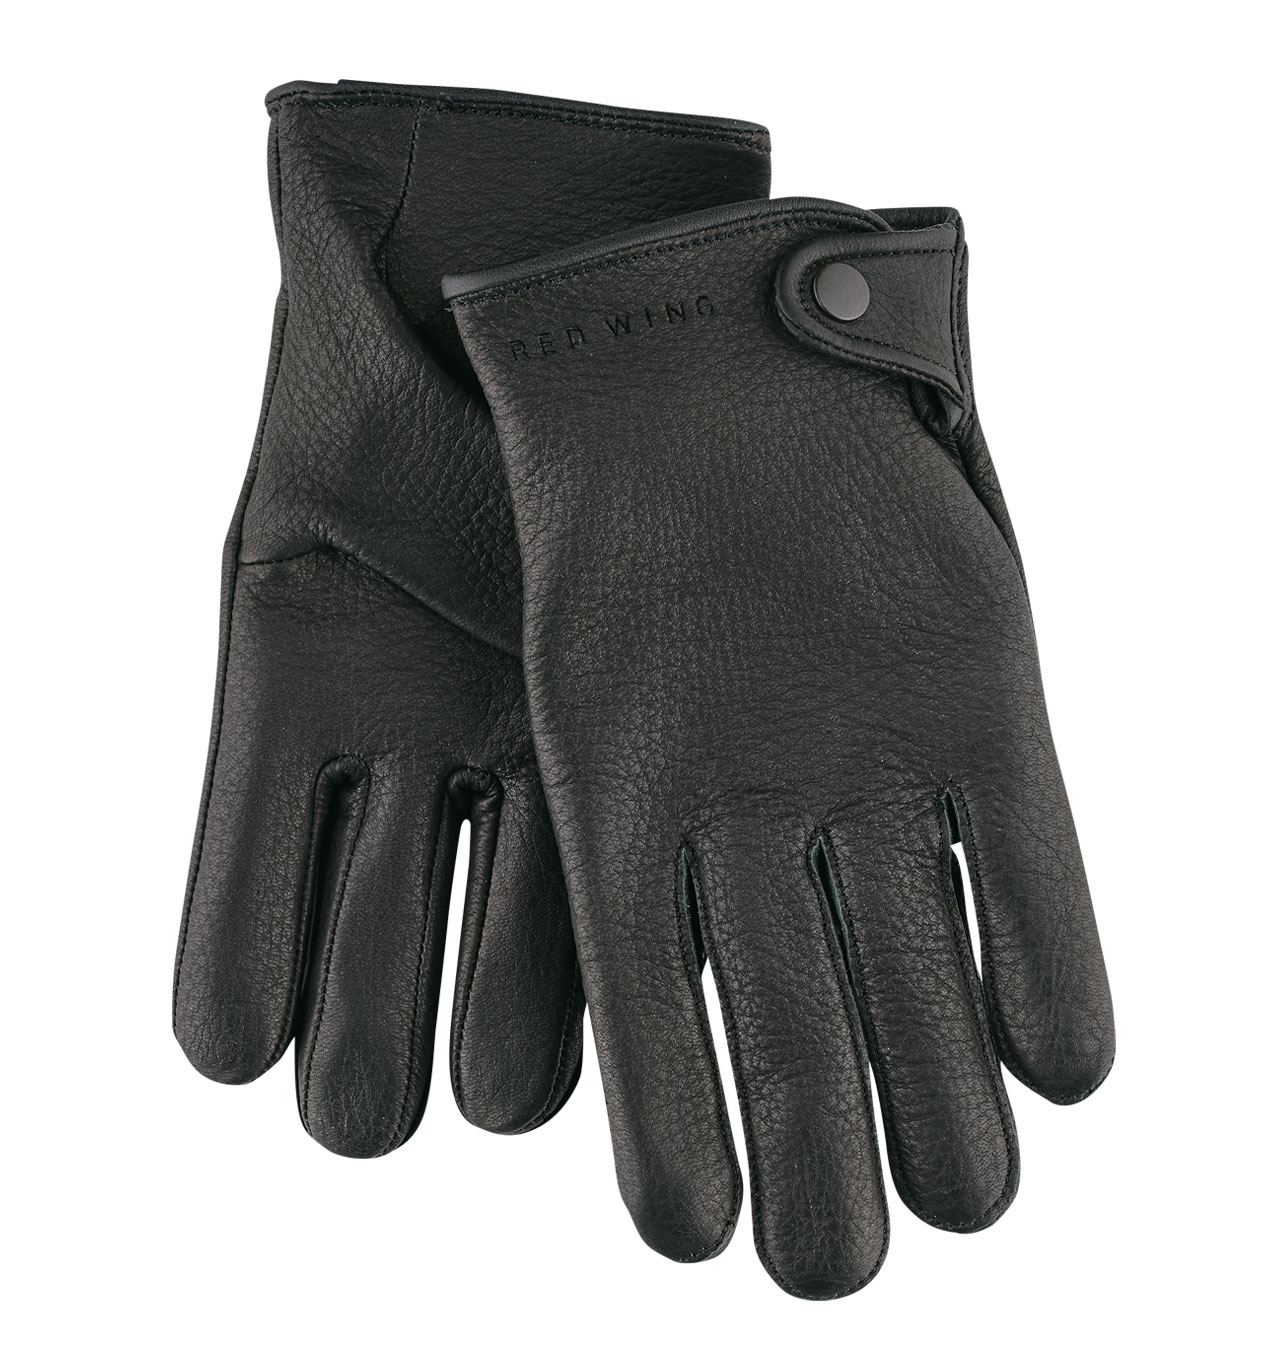 Red Wing - 95238 Driver Glove Unlined Deerskin - Black